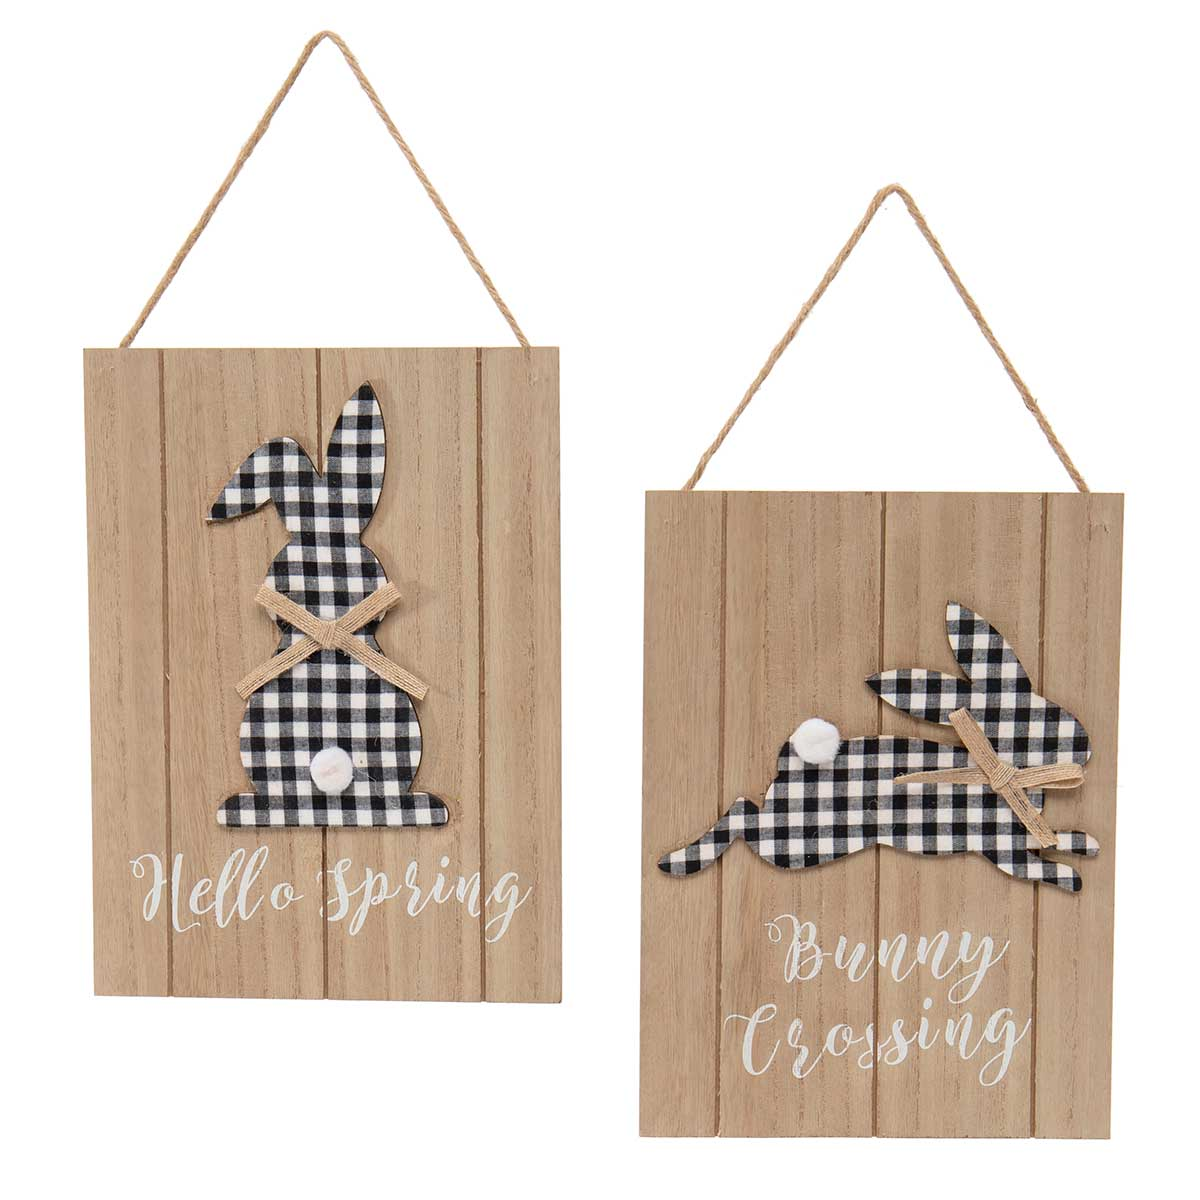 BUNNY CROSSING/HELLO SPRING WOODEN SIGN BLACK/WHITE WITH PLAID